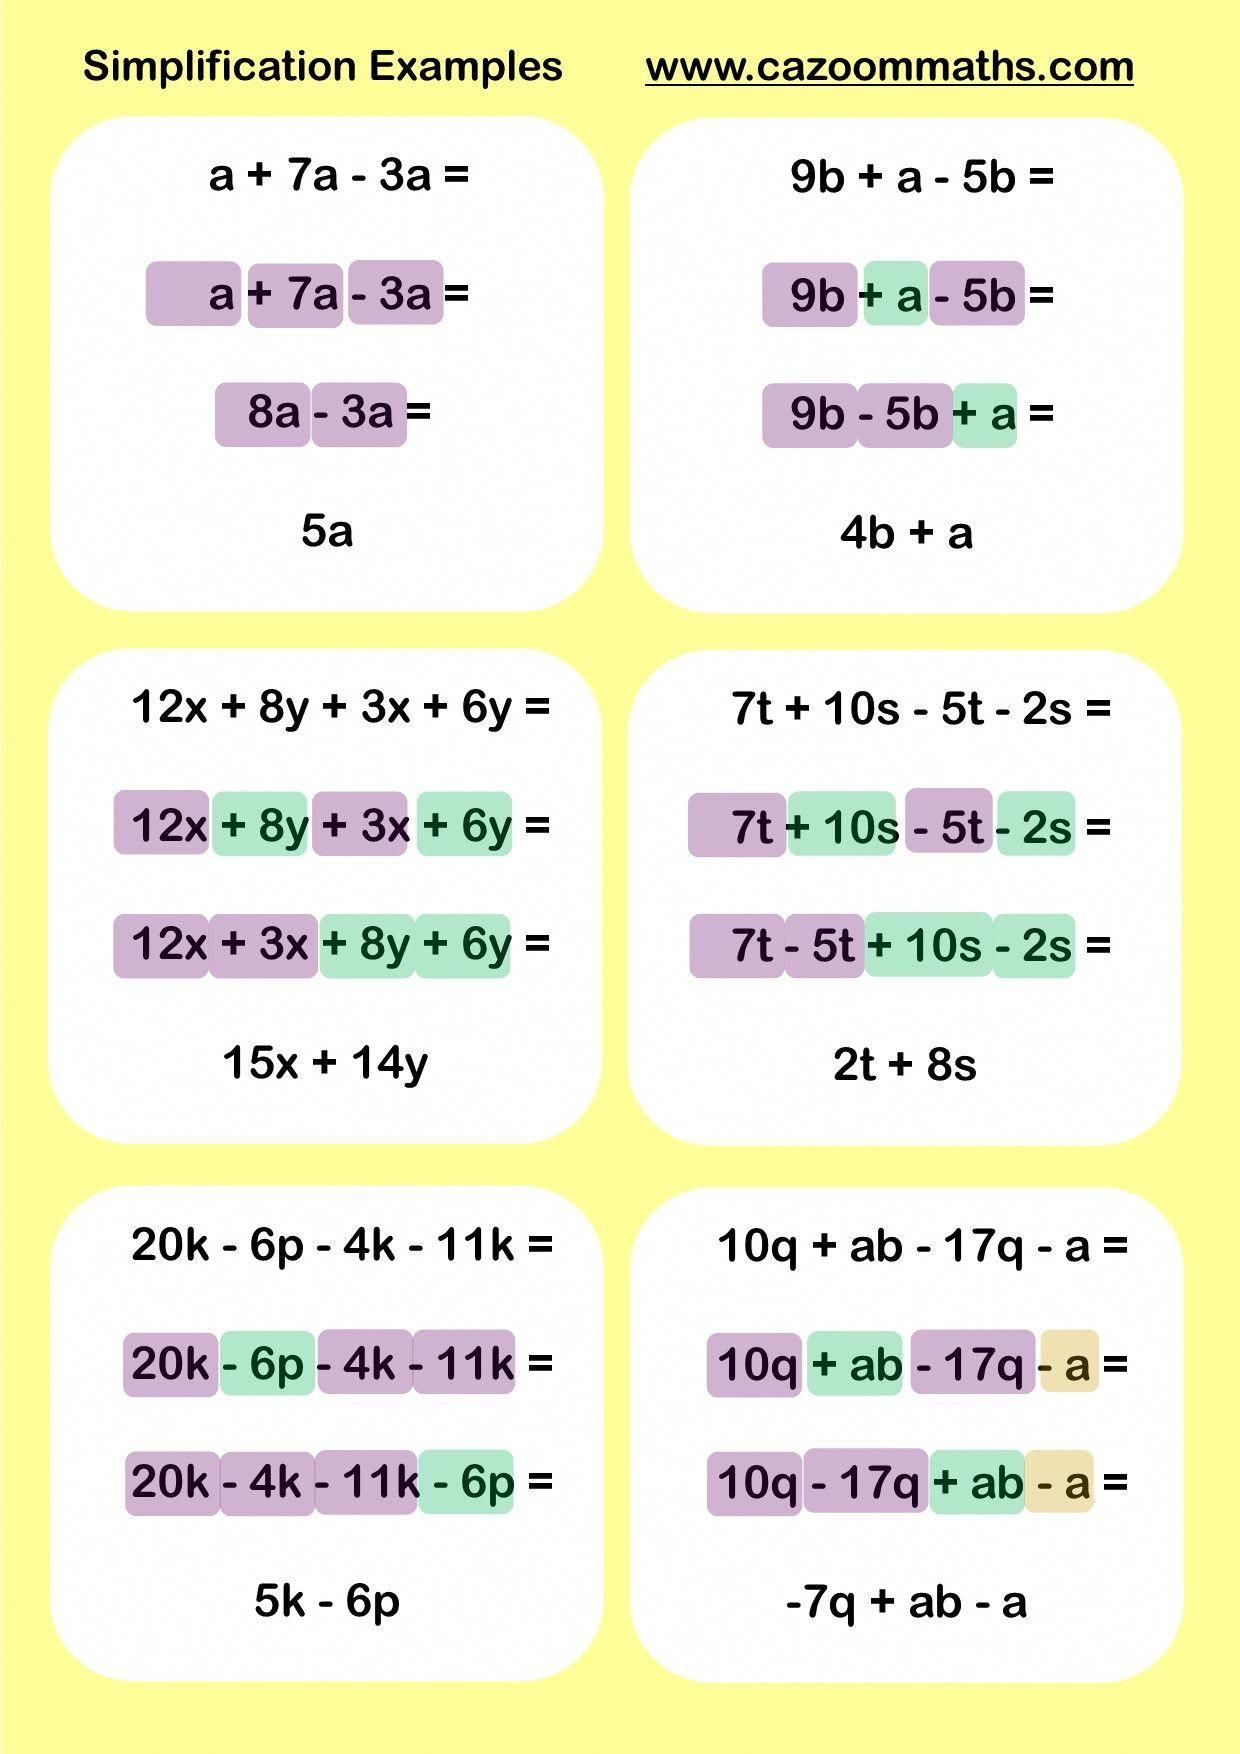 Simplification Maths Worksheets Cazoom Maths Worksheets Mathtricks Math Methods Math Resources Algebra Worksheets